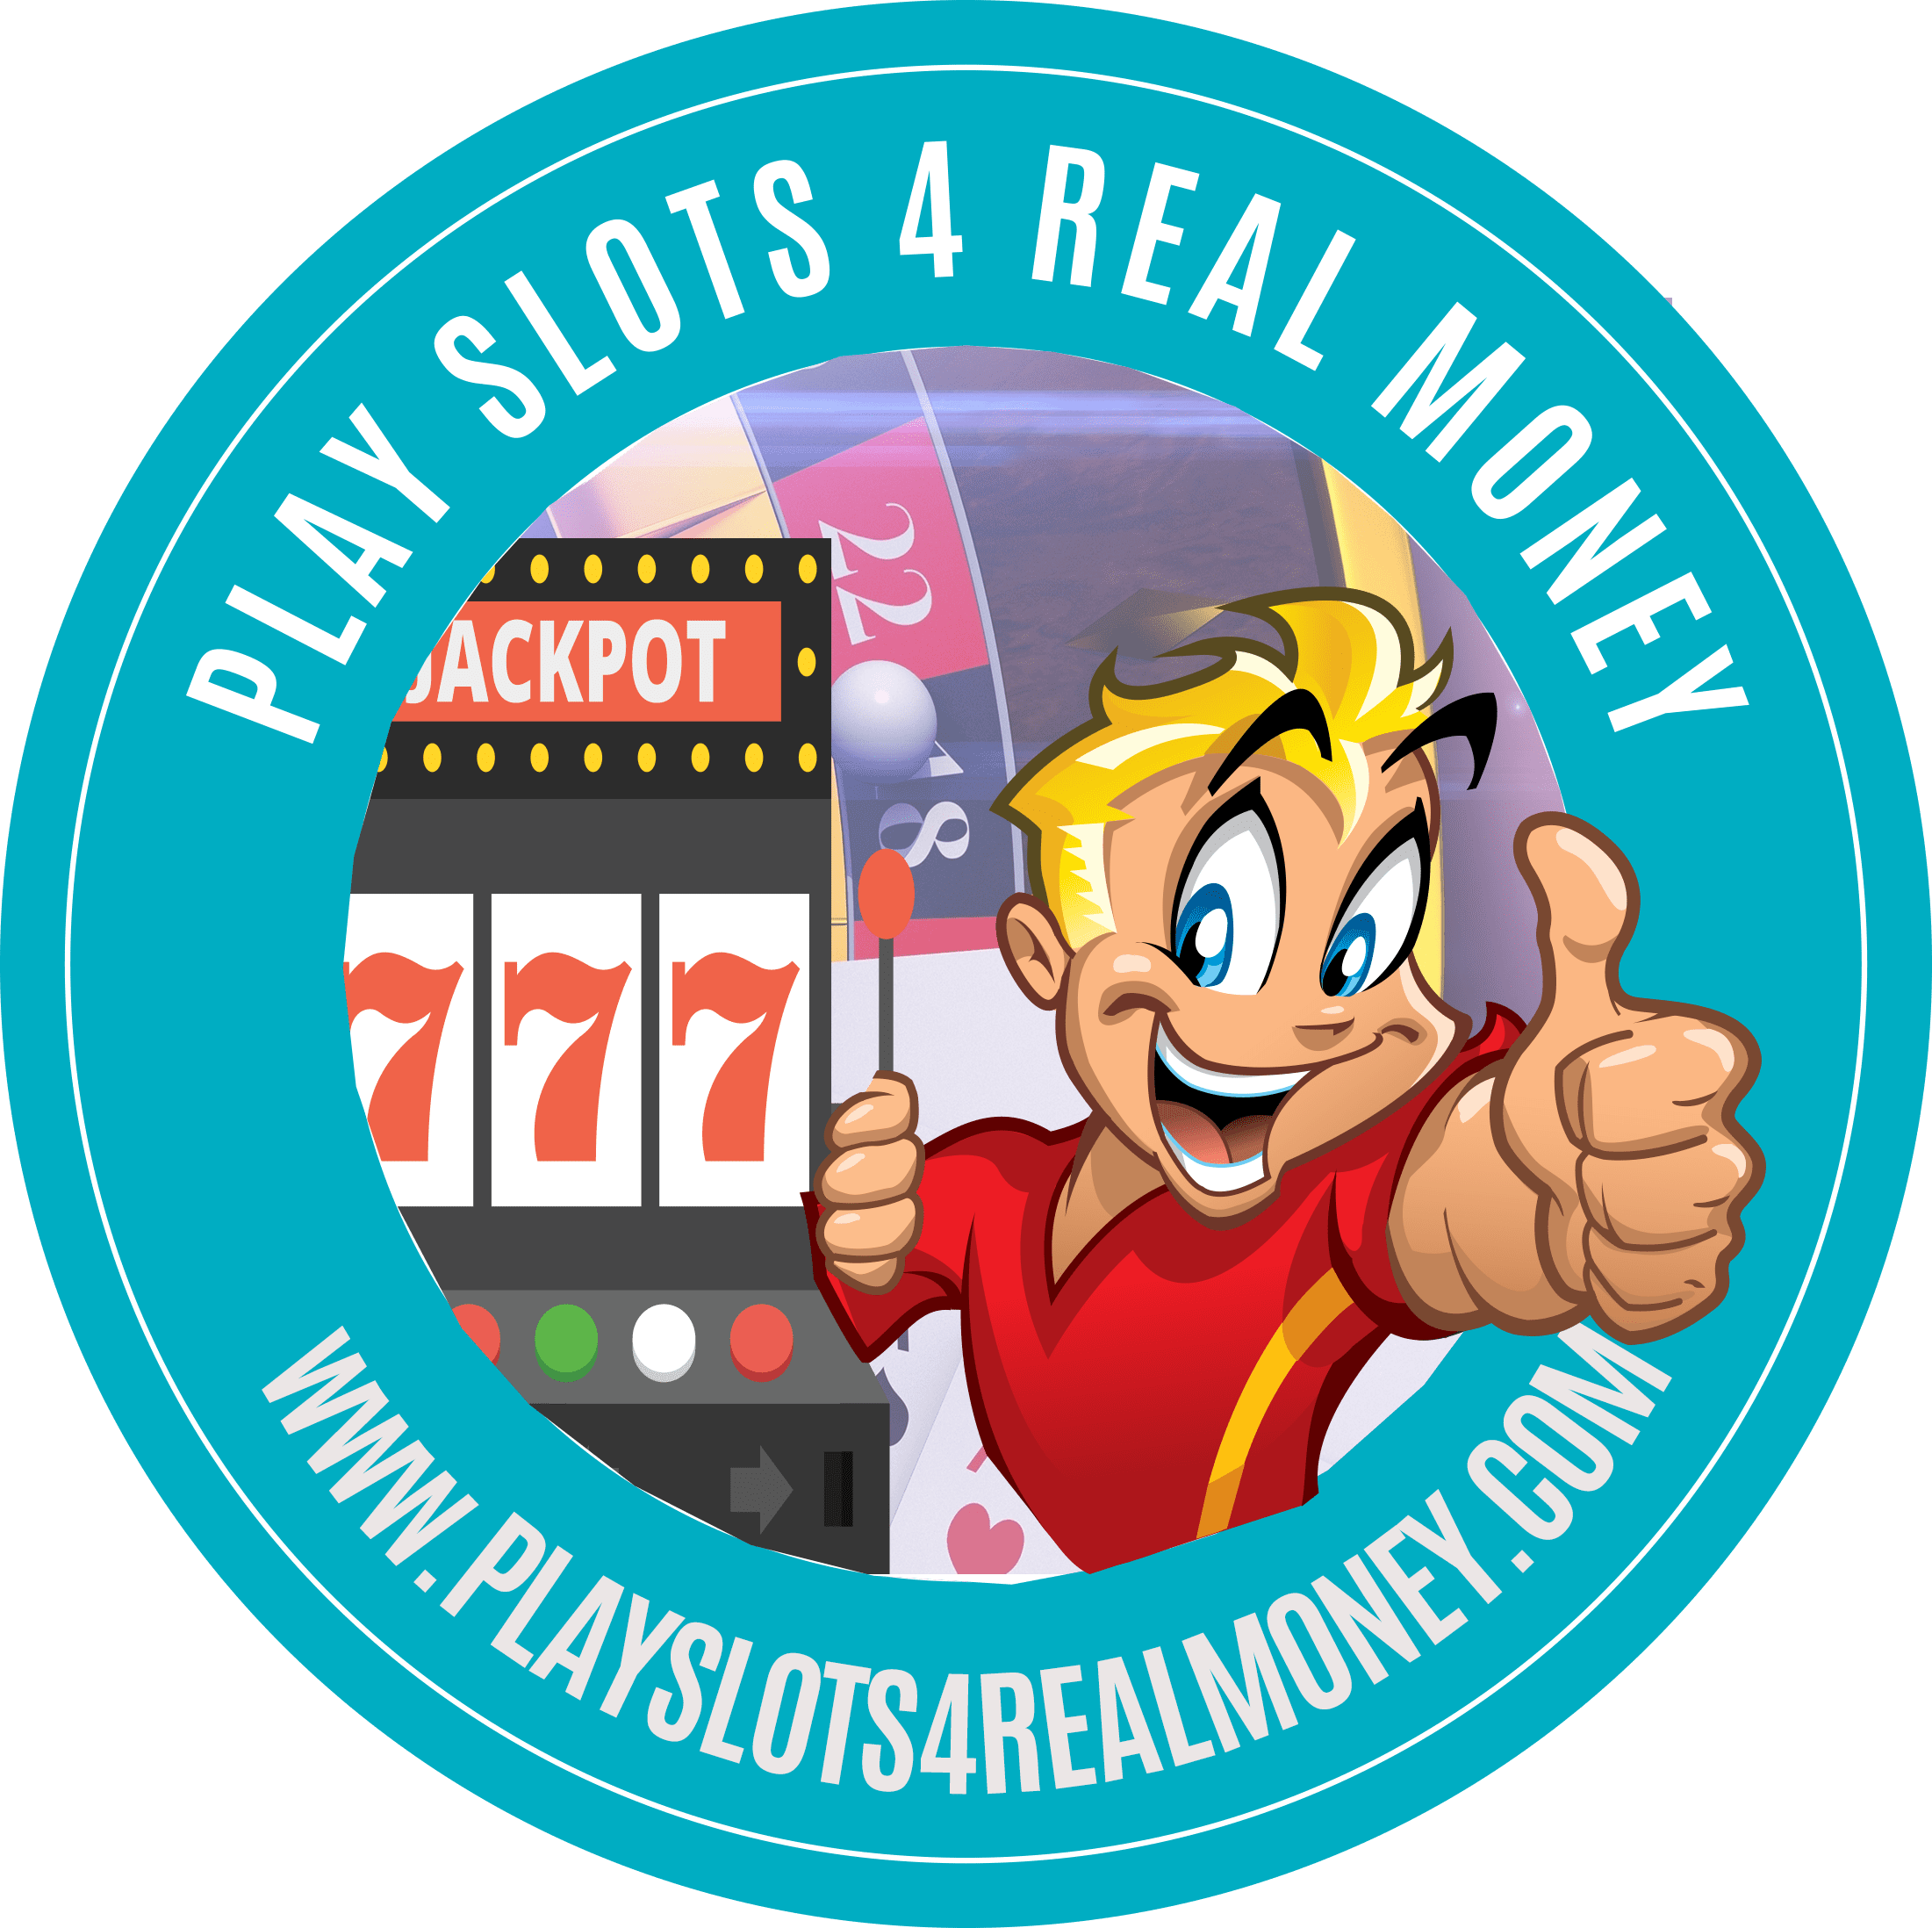 PlaySlots4RealMoney.com